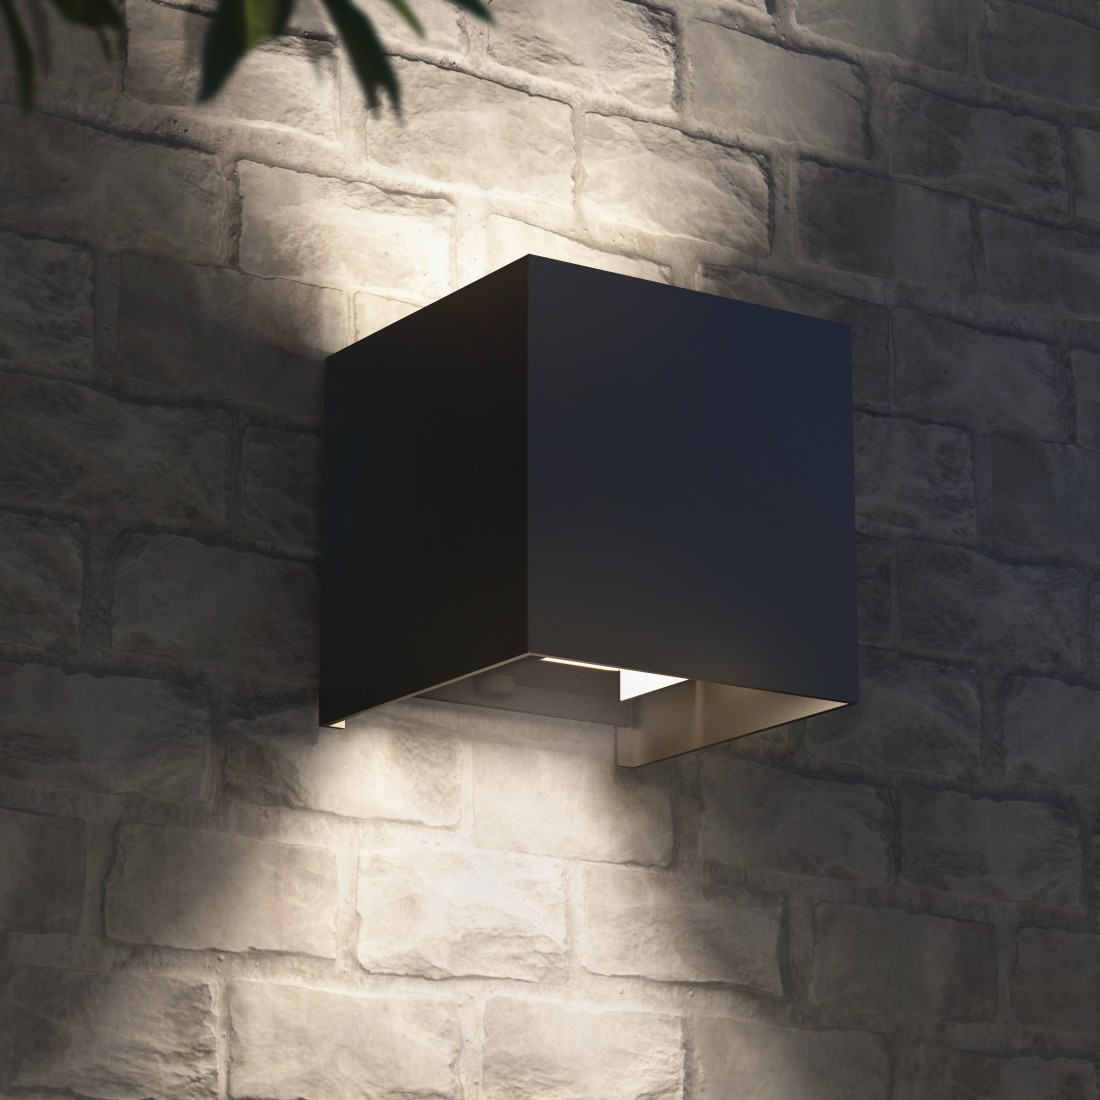 awx2 High-Res Appliance 2 - Hama, WiFi Wall Light, Square, 10 cm, IP 44 for Indoors and Outdoors, black